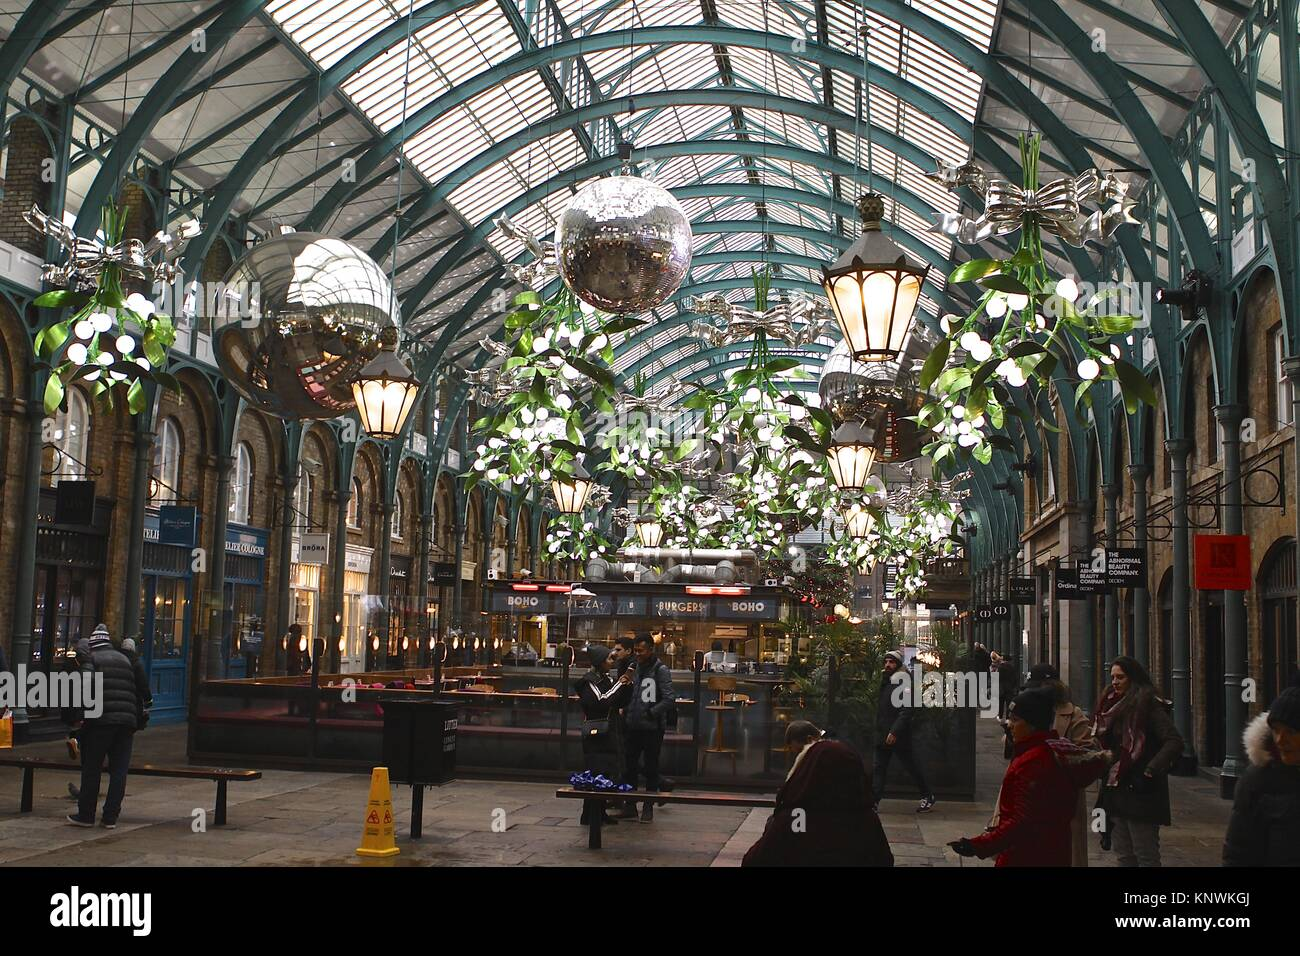 Covent Garden London England Christmas 2017 - Stock Image